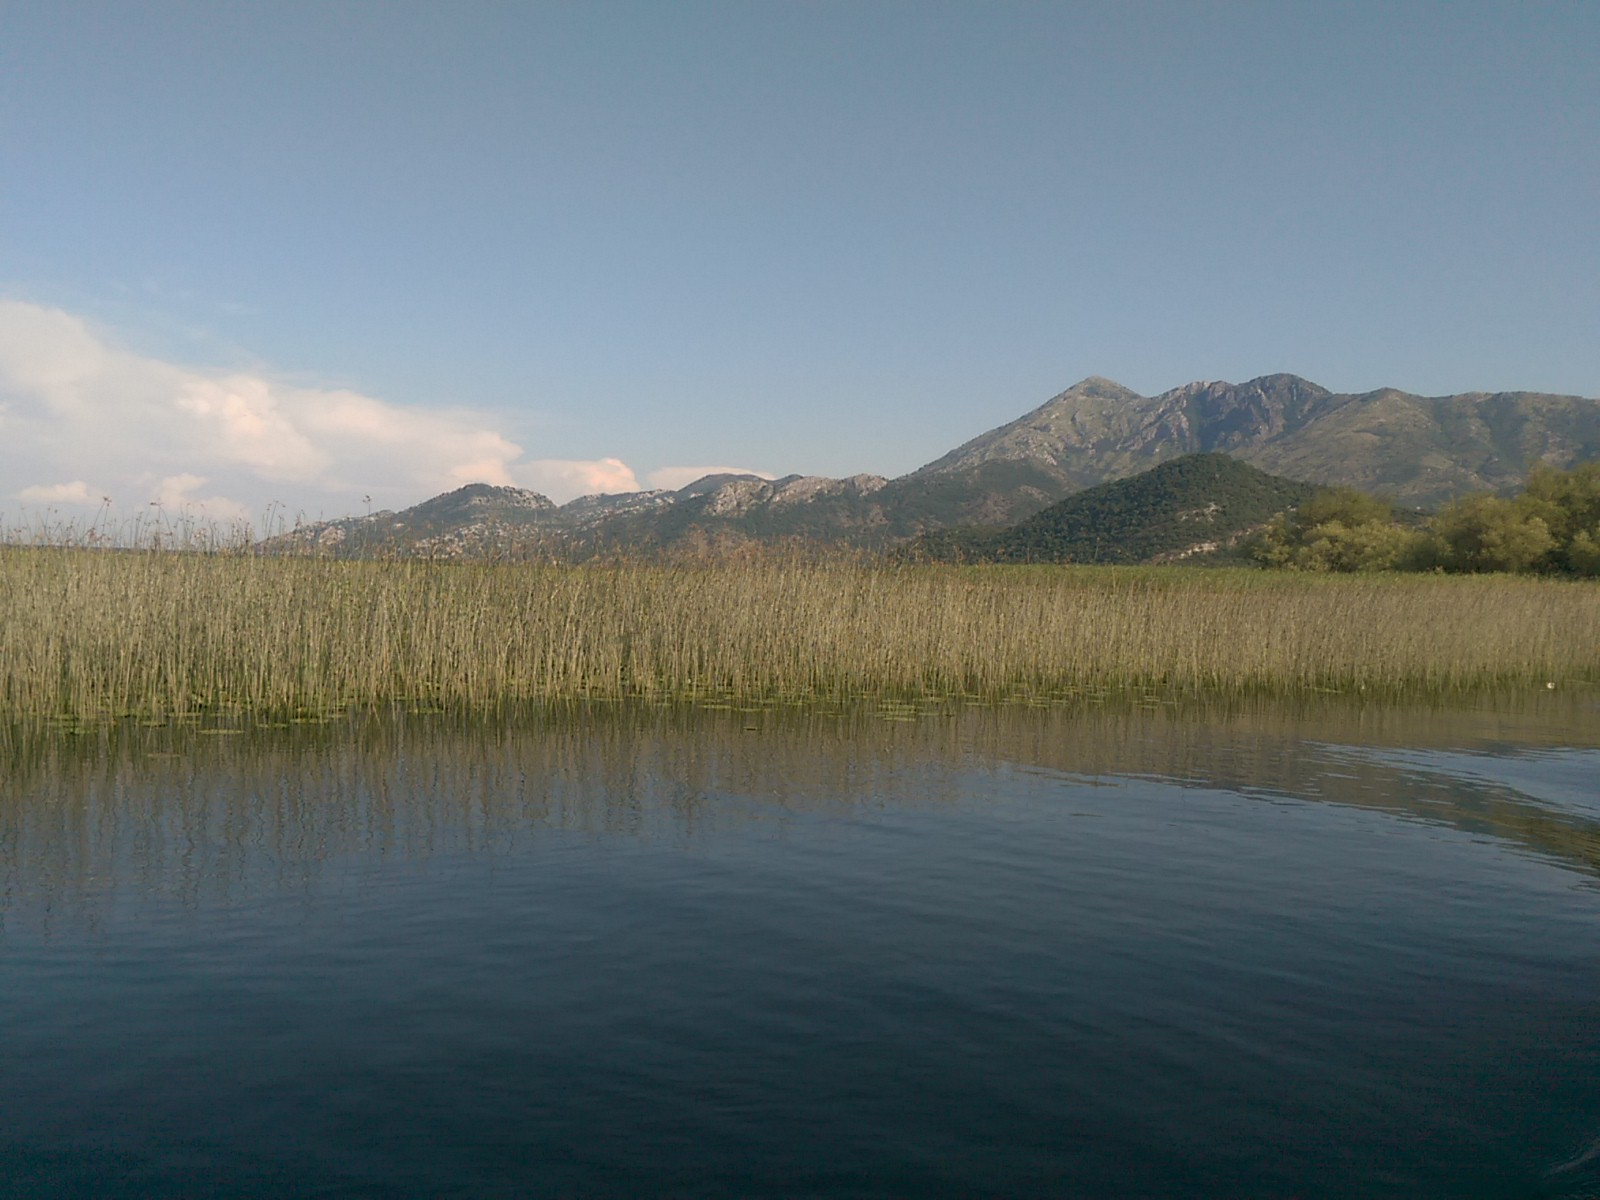 Smooth lake water with reeds growing out and mountains in the background